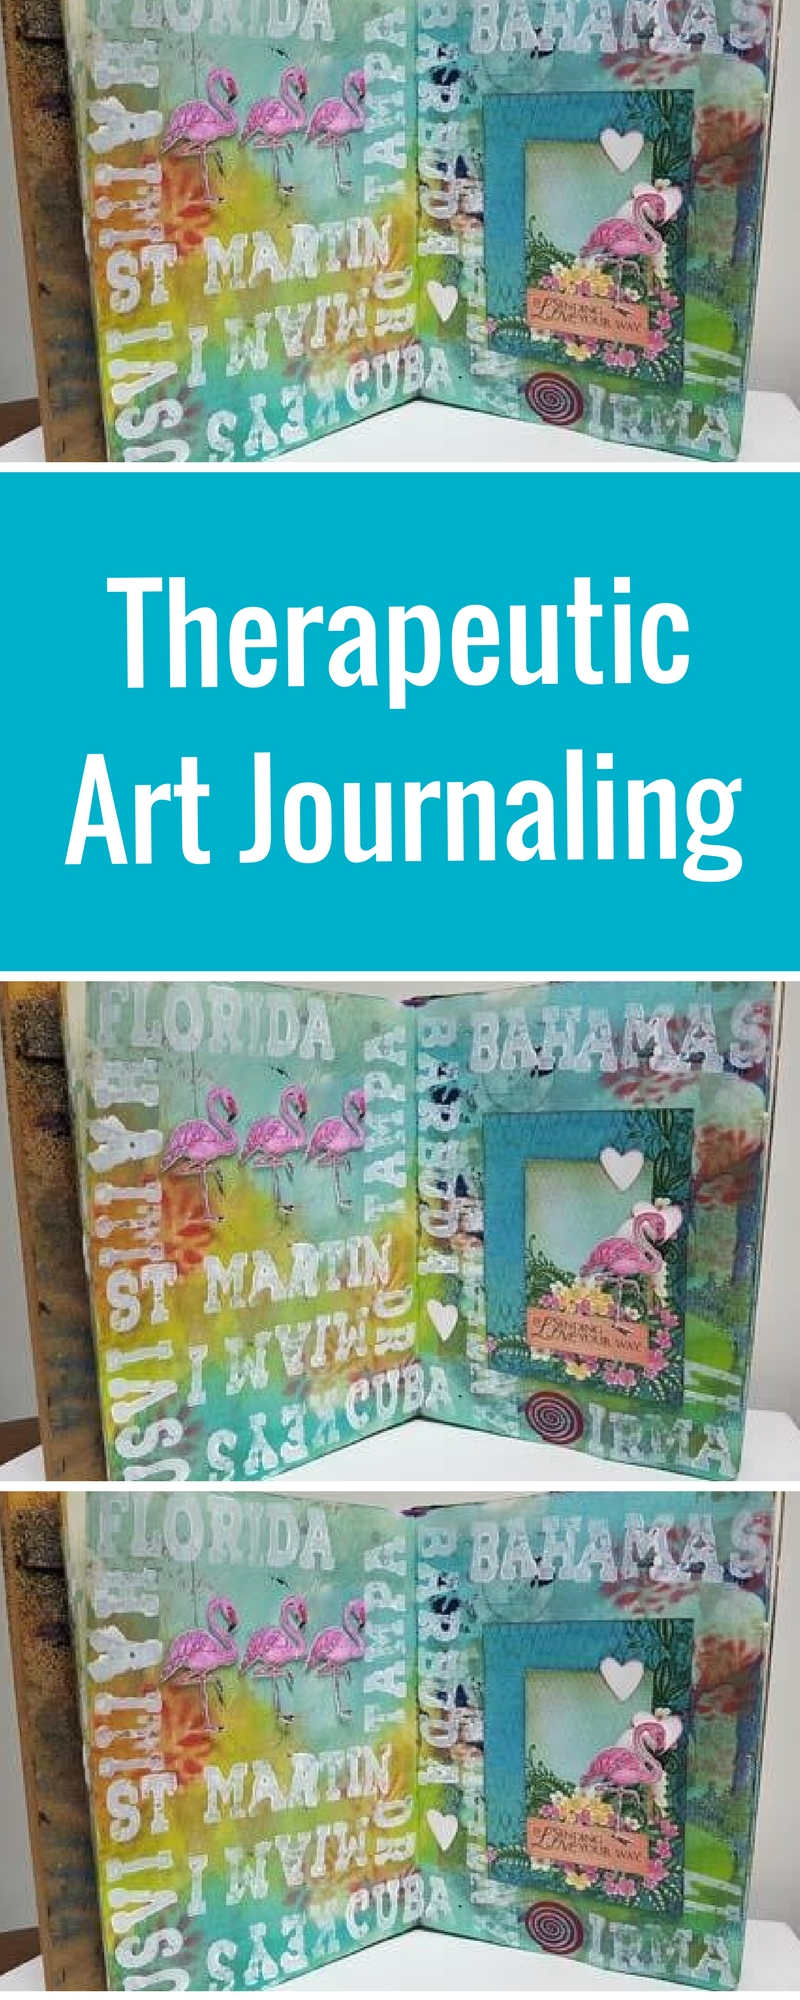 Art Journaling | Featuring Heartfelt Creations and Ranger | Designed by Karen Ellis | Dedicated to Hurricane Irma | Creative Scrapbooker Magazine